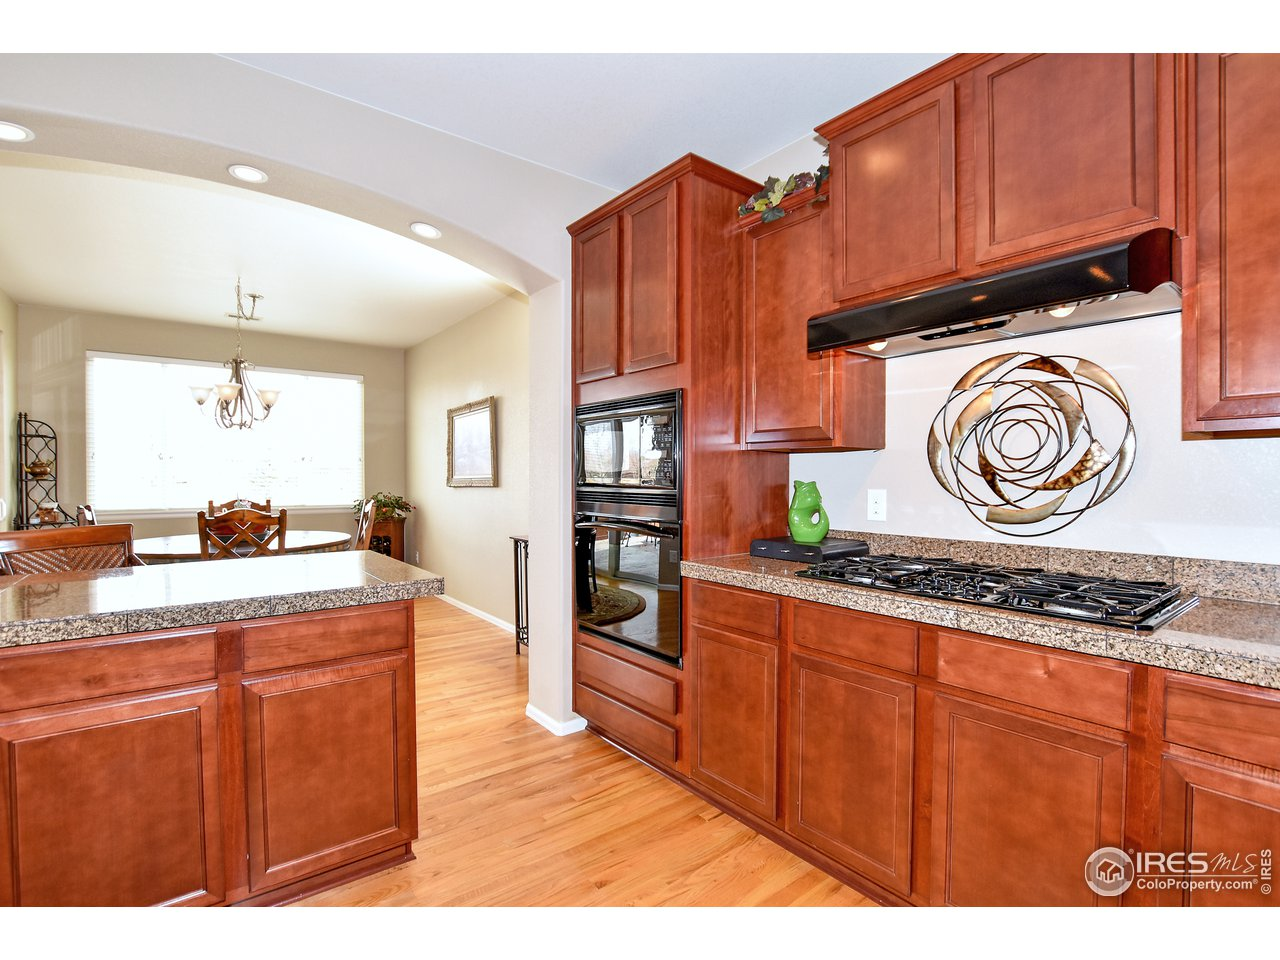 5 burner gas cooktop and single oven